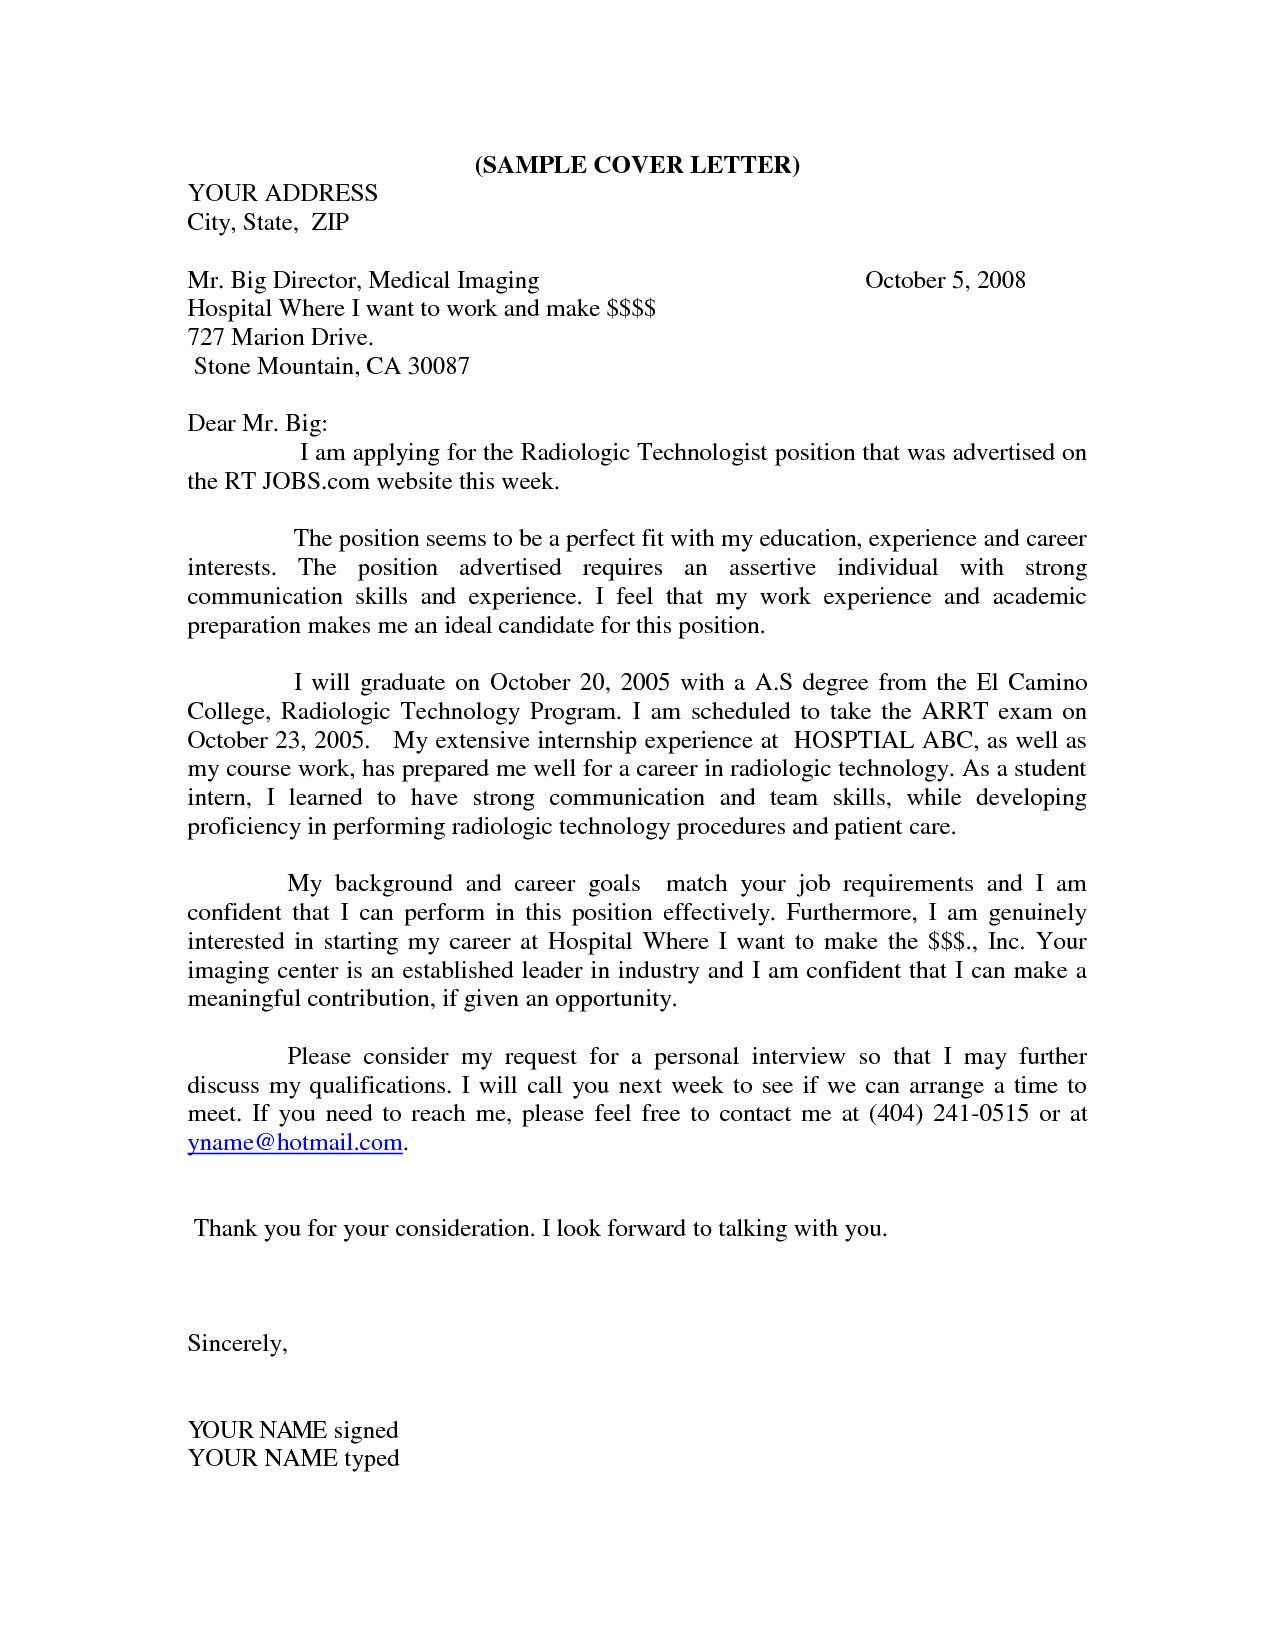 X Ray Tech Cover Letter Template | Cover Letter Template | Pinterest ...